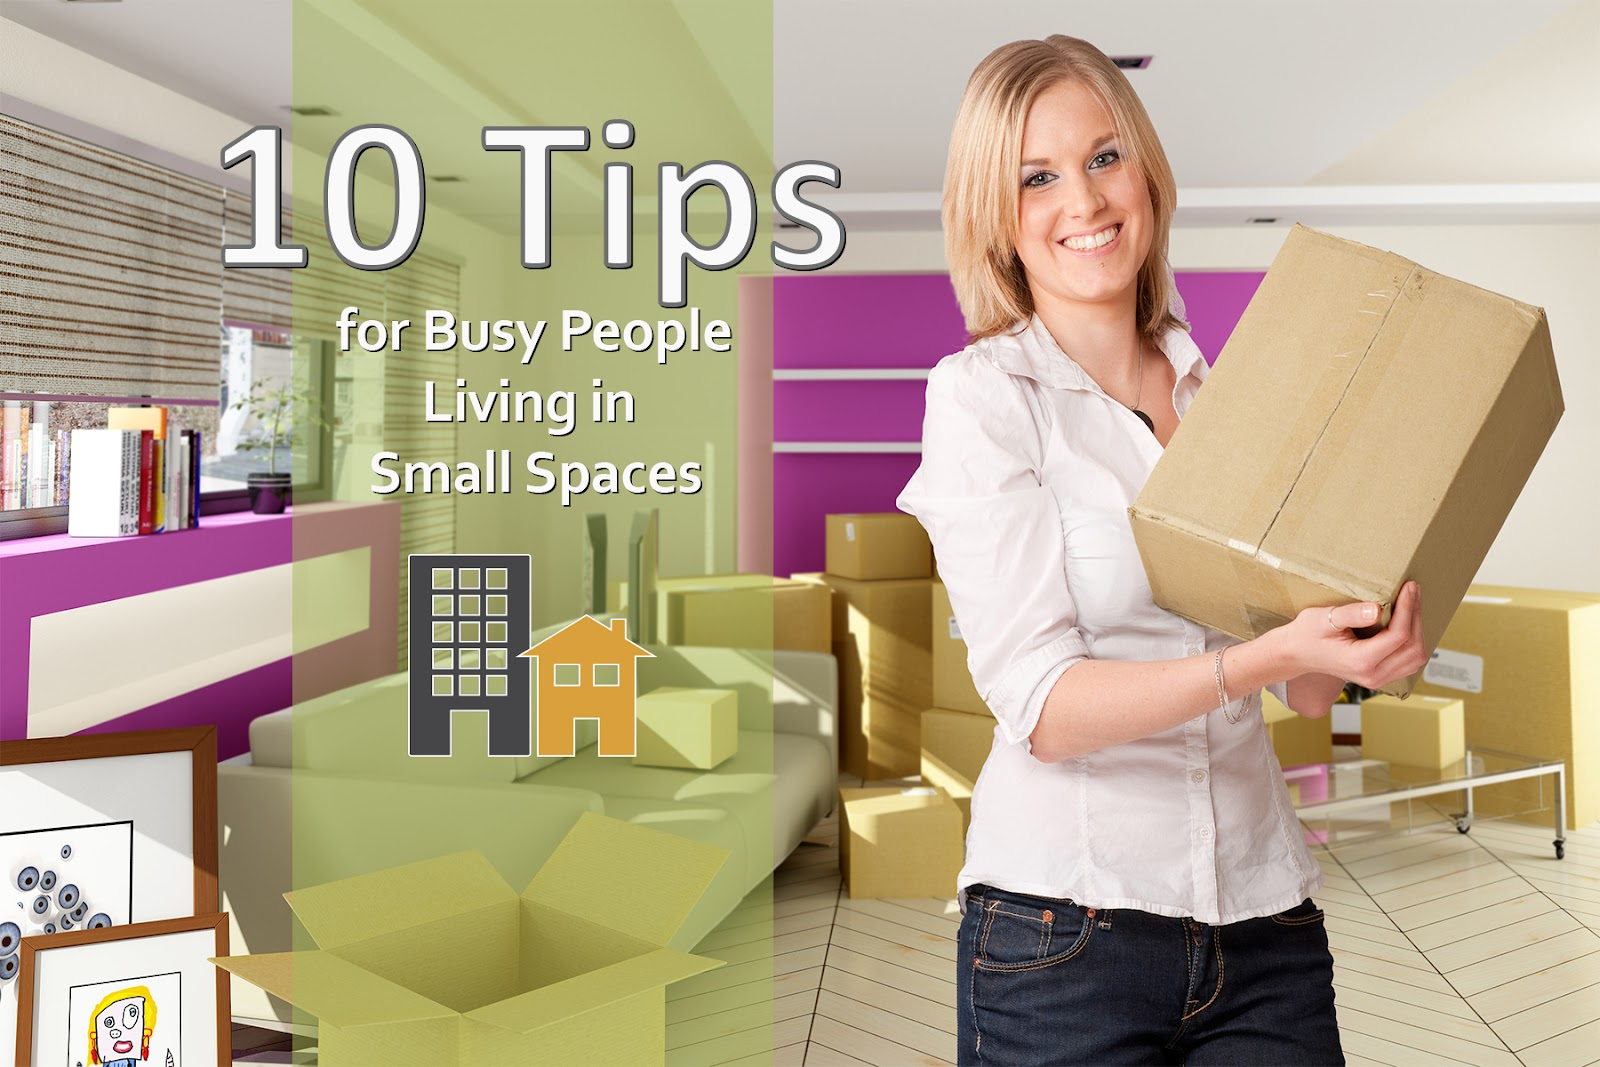 10 tipsSmall Spaces Blog pic.jpg